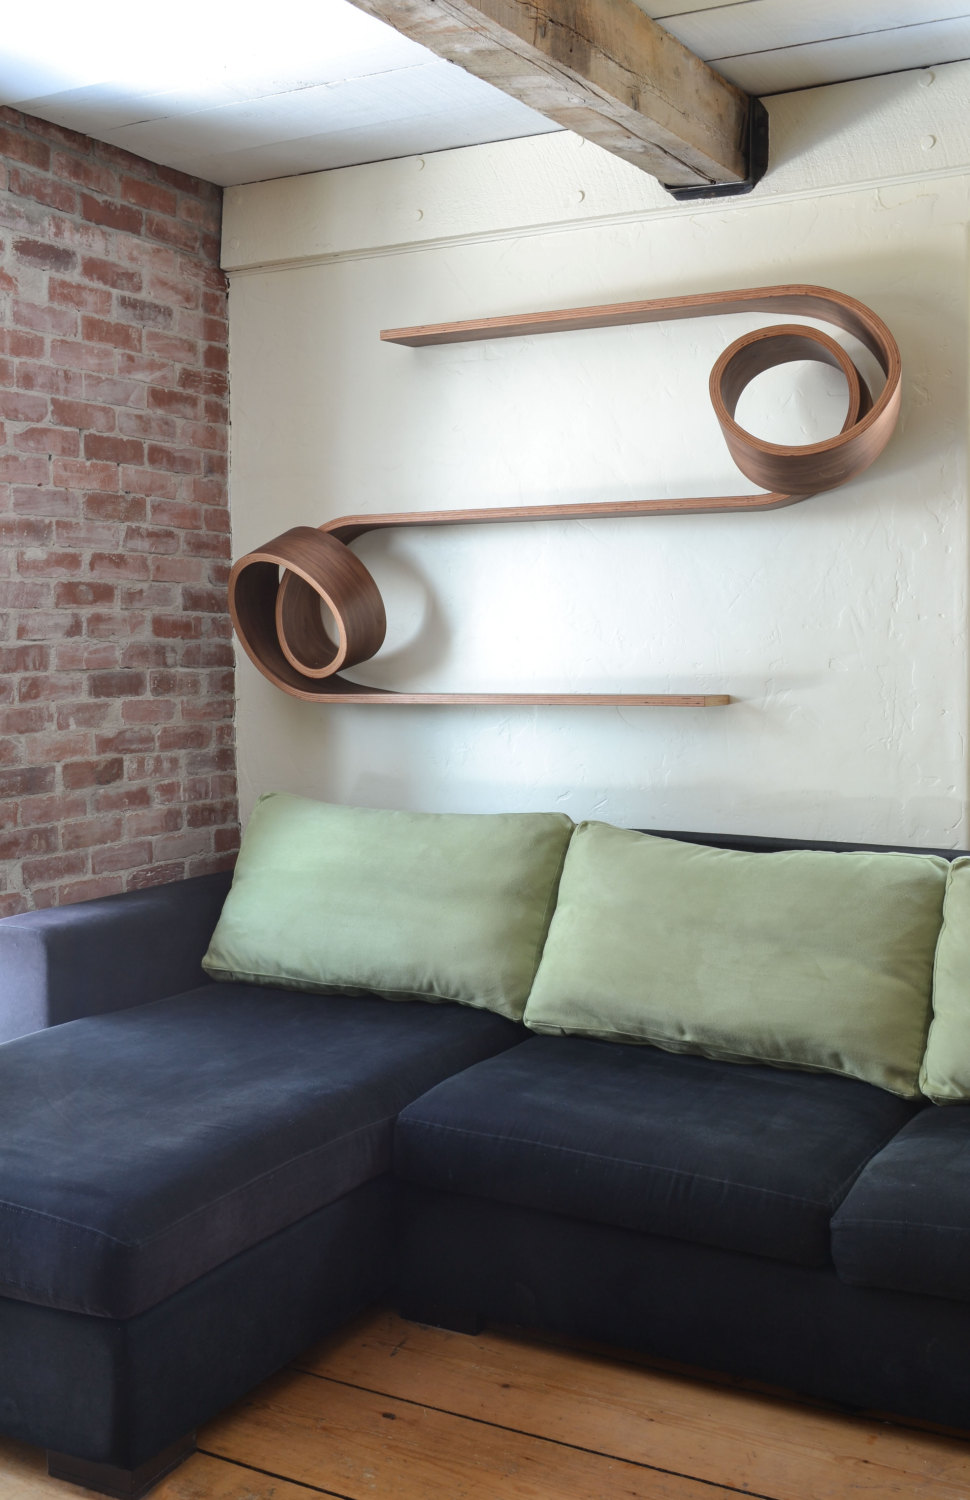 sculptural-furniture-collection-that-ties-the-knot-4